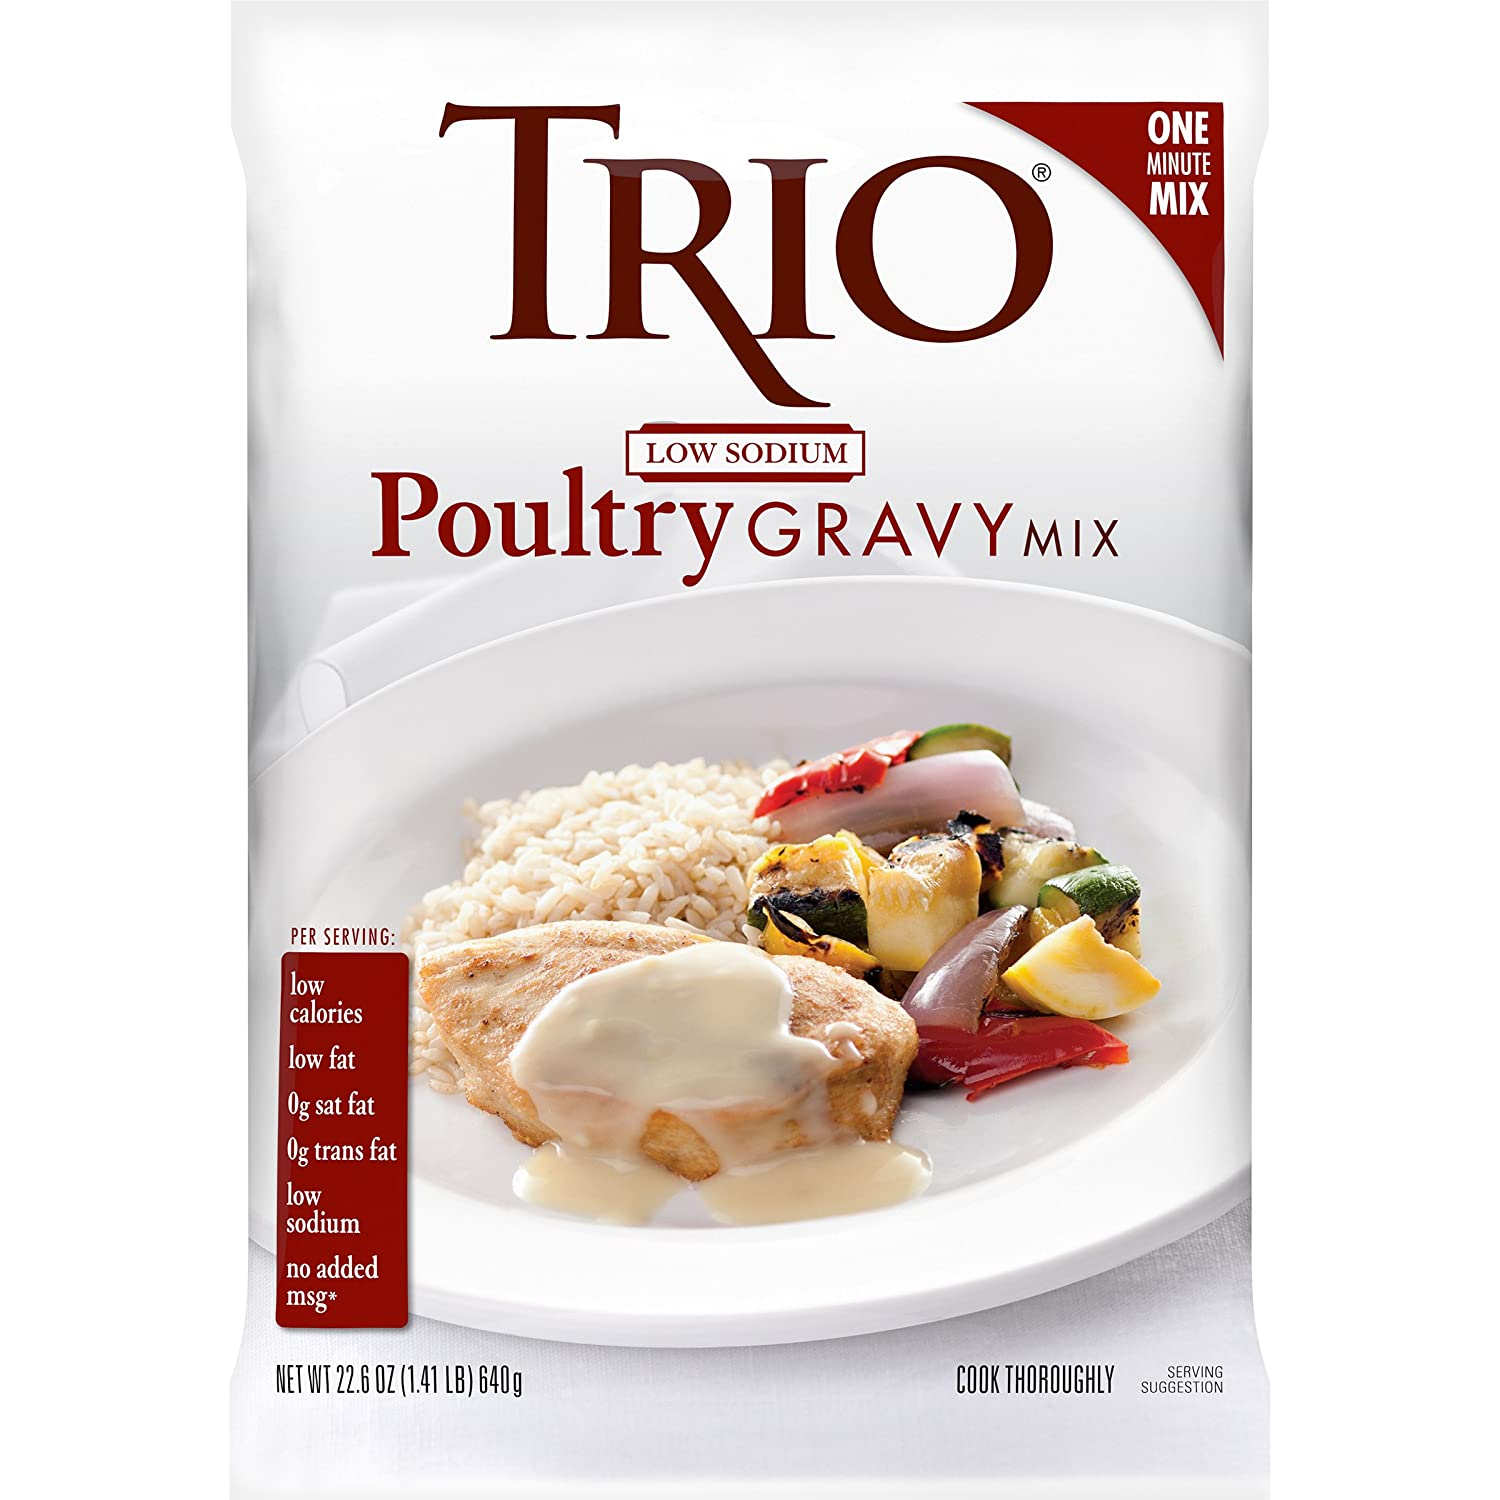 Trio Low Sodium Poultry Gravy Mix, Dehydrated Foods, Low Sodium Foods, 22.6 oz